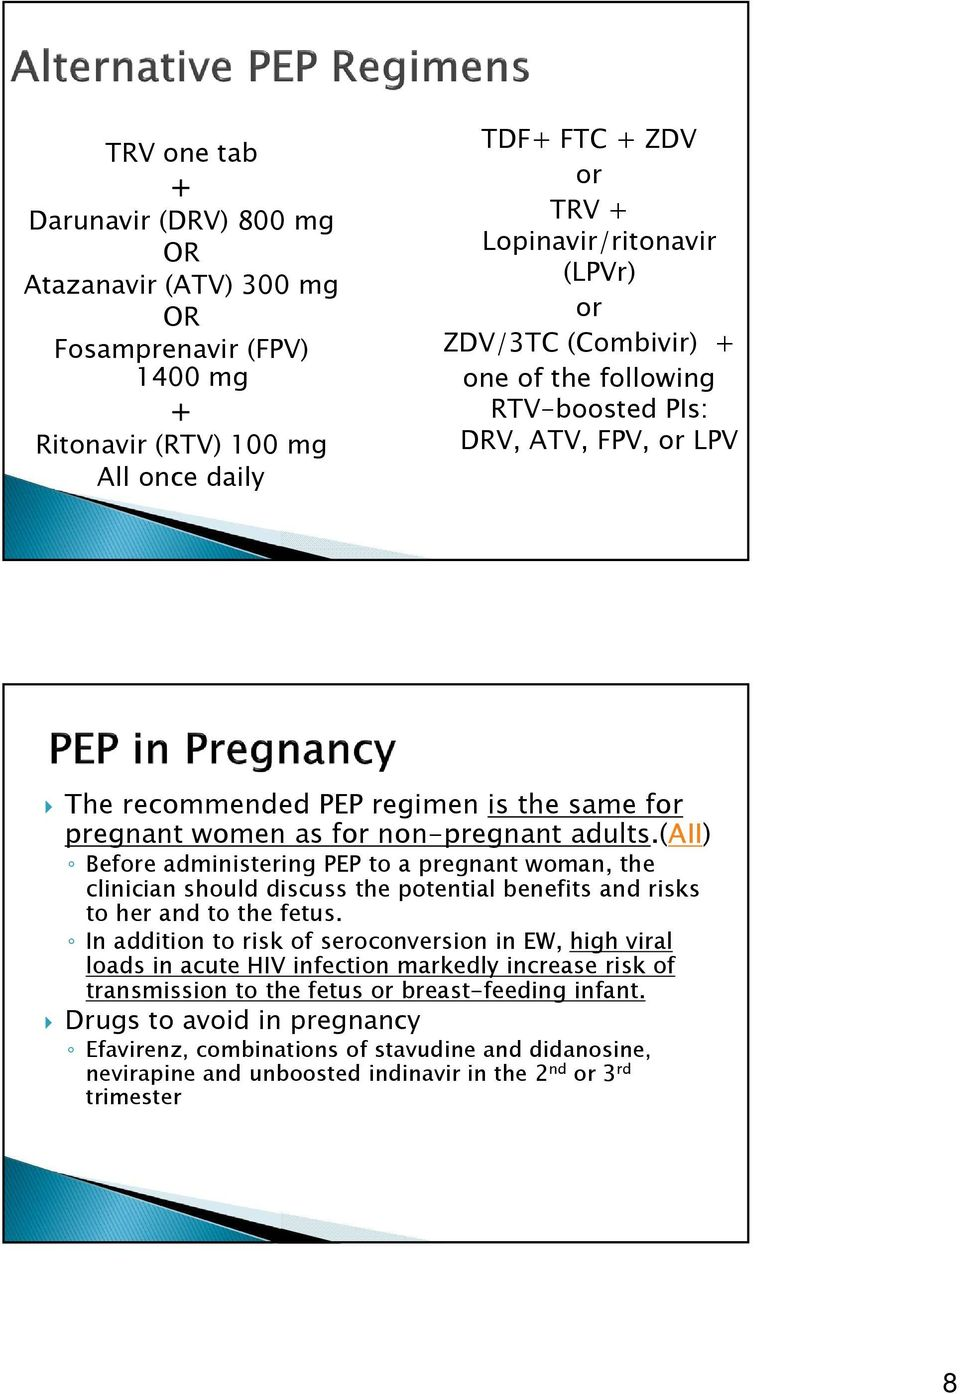 (aii) Before administering PEP to a pregnant woman, the clinician should discuss the potential benefits and risks to her and to the fetus.